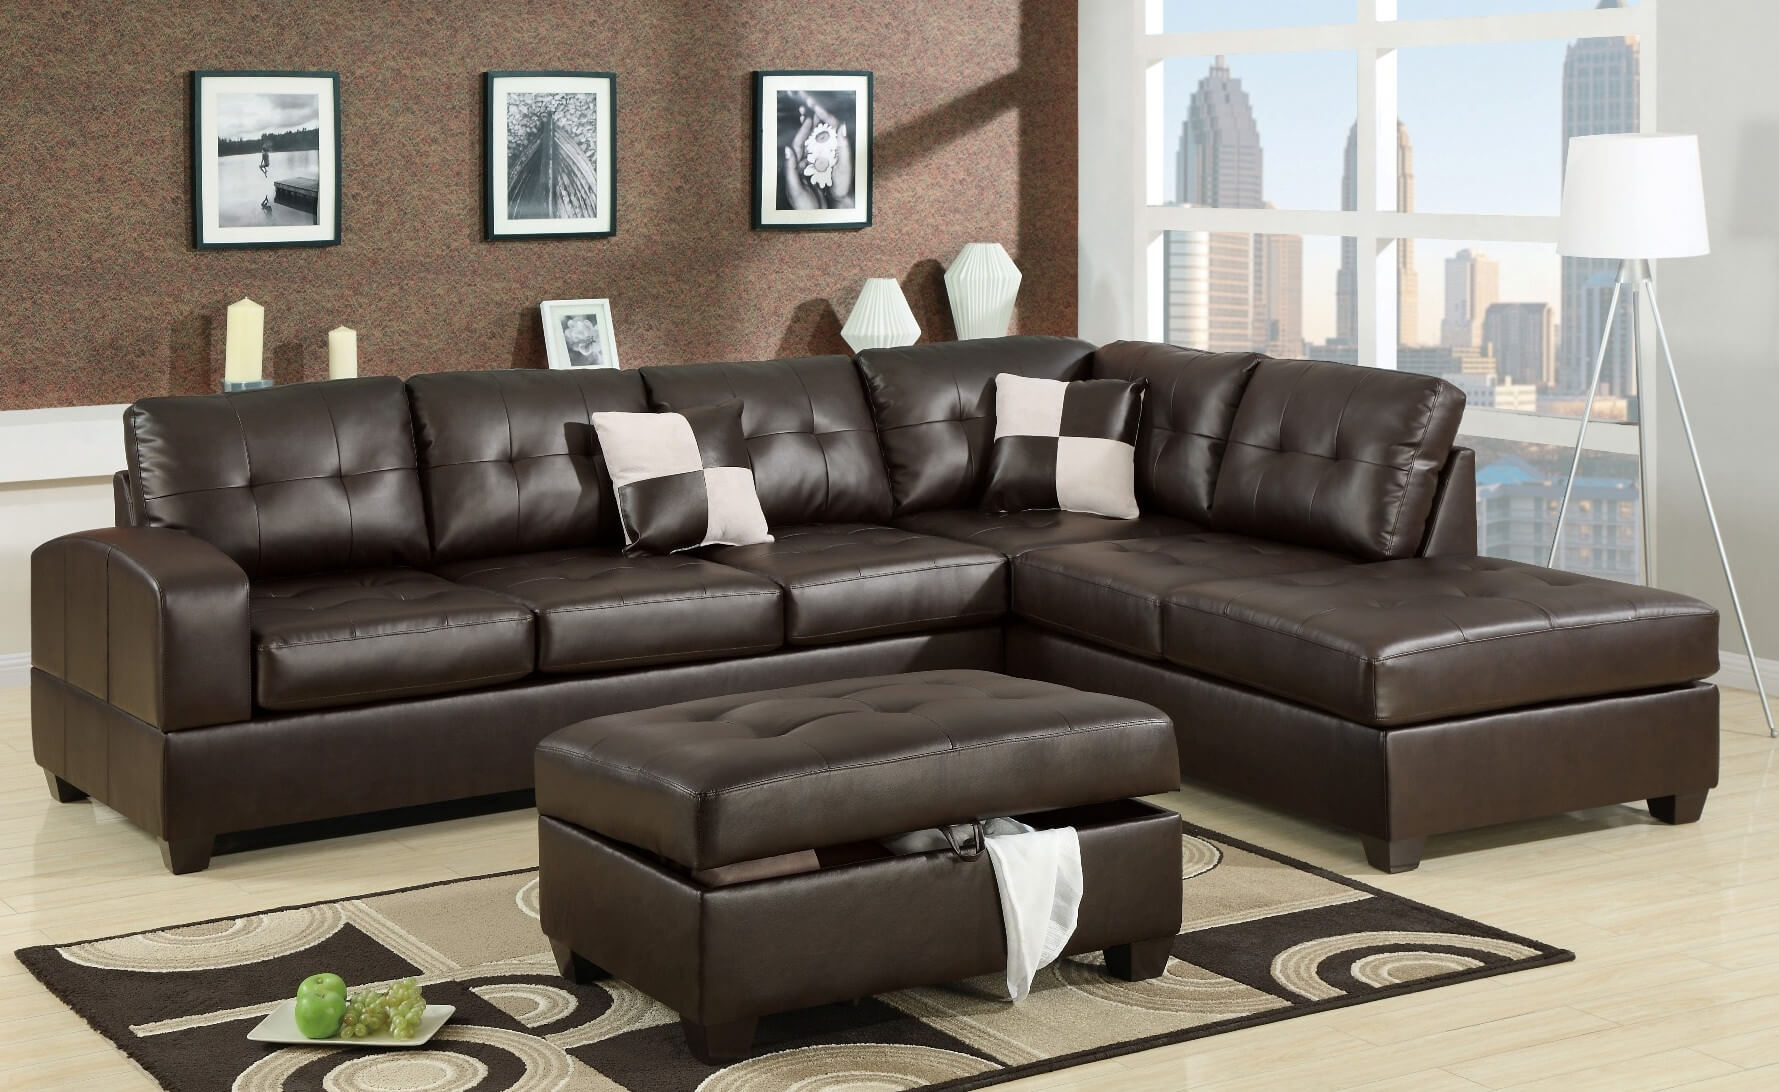 100 Awesome Sectional Sofas Under $1,000 (2018) With Sectional Sofas Under (View 2 of 15)